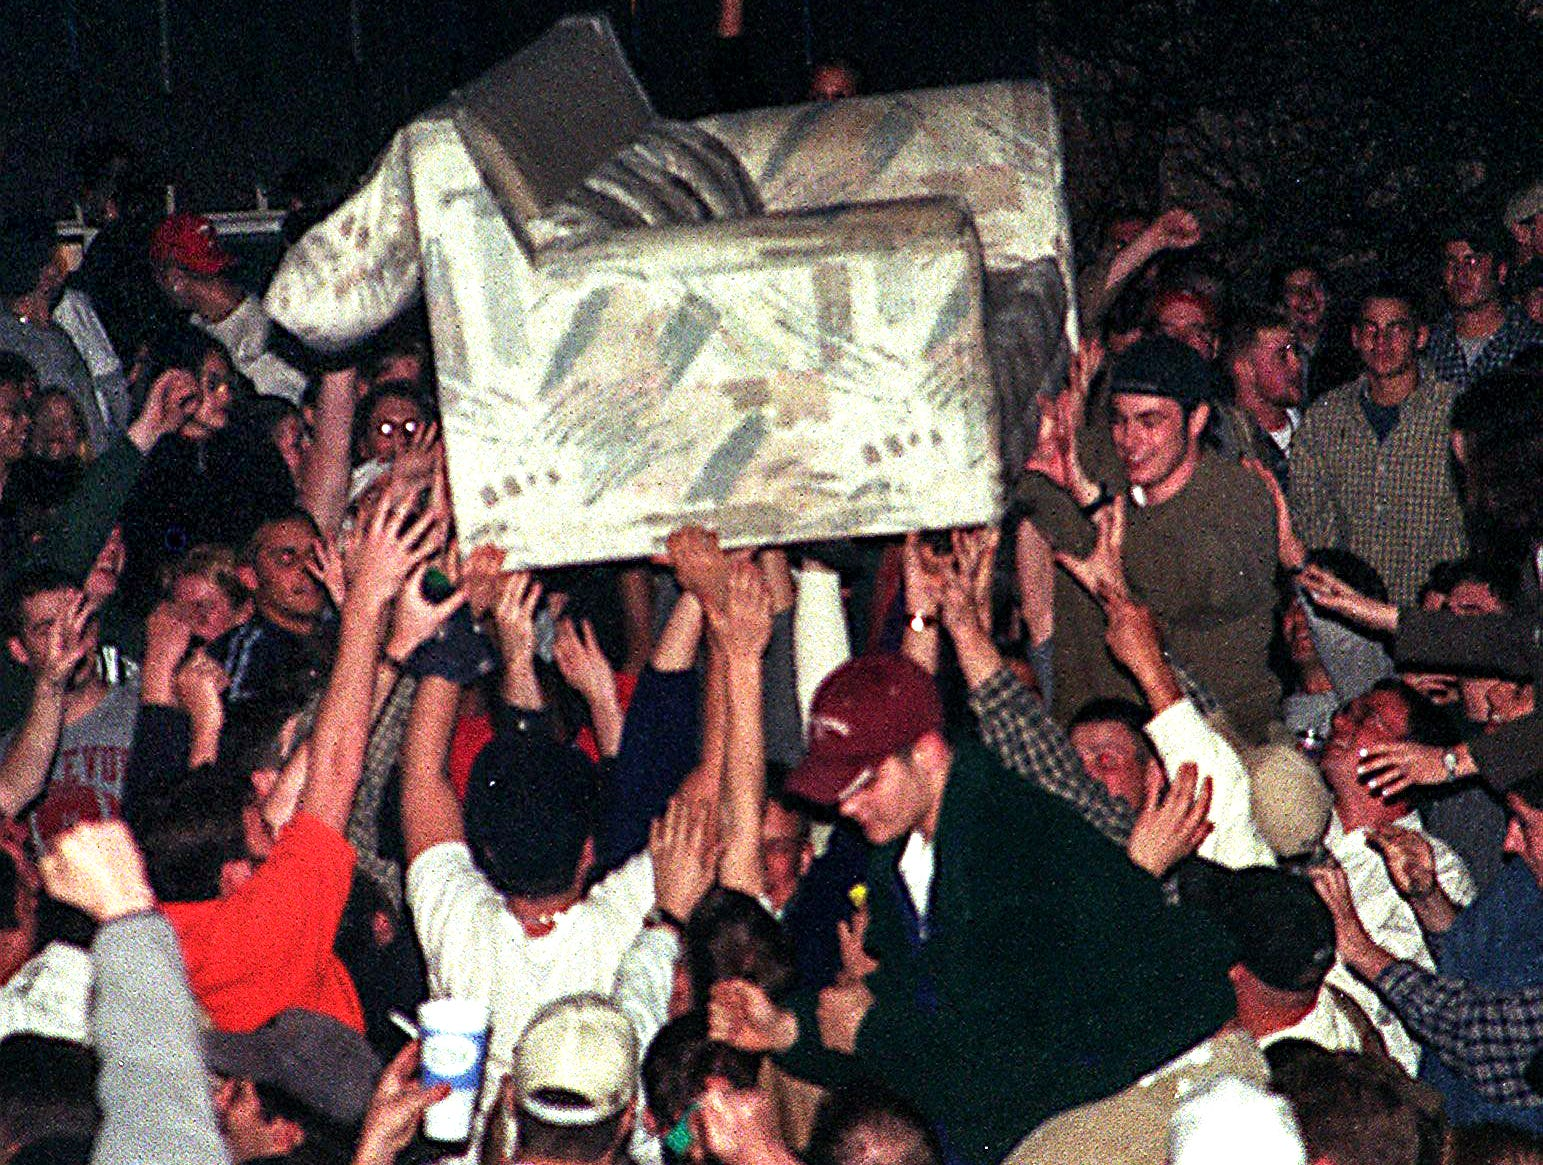 People in Cedar Village pass a couch overhead minutes after the Michigan State game ended in a loss to Duke in the Final Four of the NCAA Men's Basketball Tournament on Saturday, March 27, 1999, in East Lansing. The first of a series of fires started minutes later.